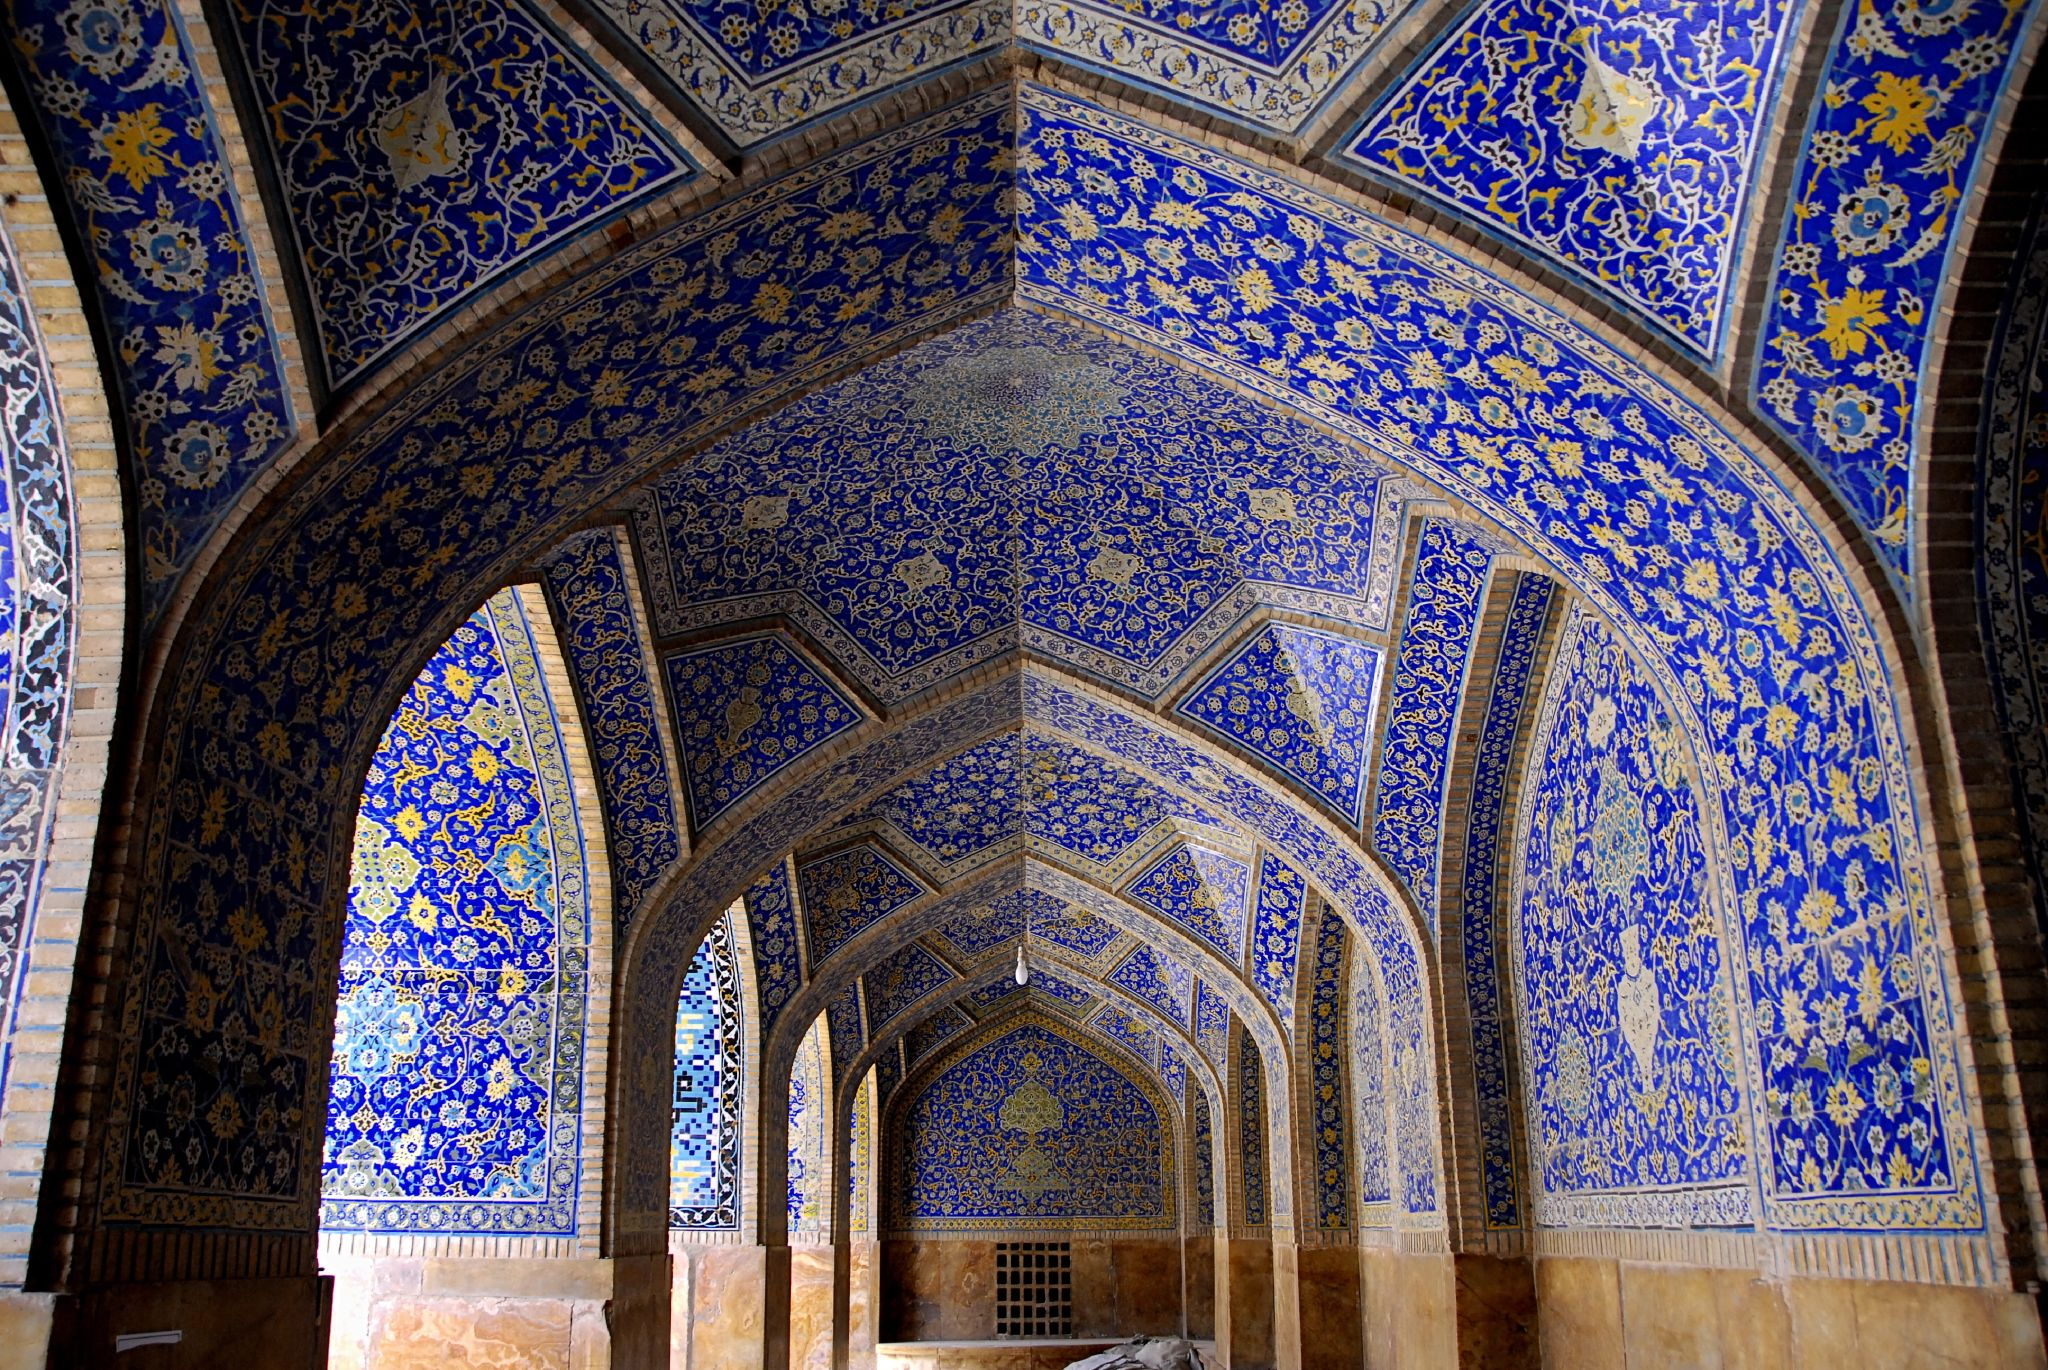 persia muslim The atheists and non-religious muslims in iran also tend to be largely from the persian and azeri shi'a communities by definition, anyone who proclaims his/her belief that god is one and that muhammad is his prophet and messenger is muslim.